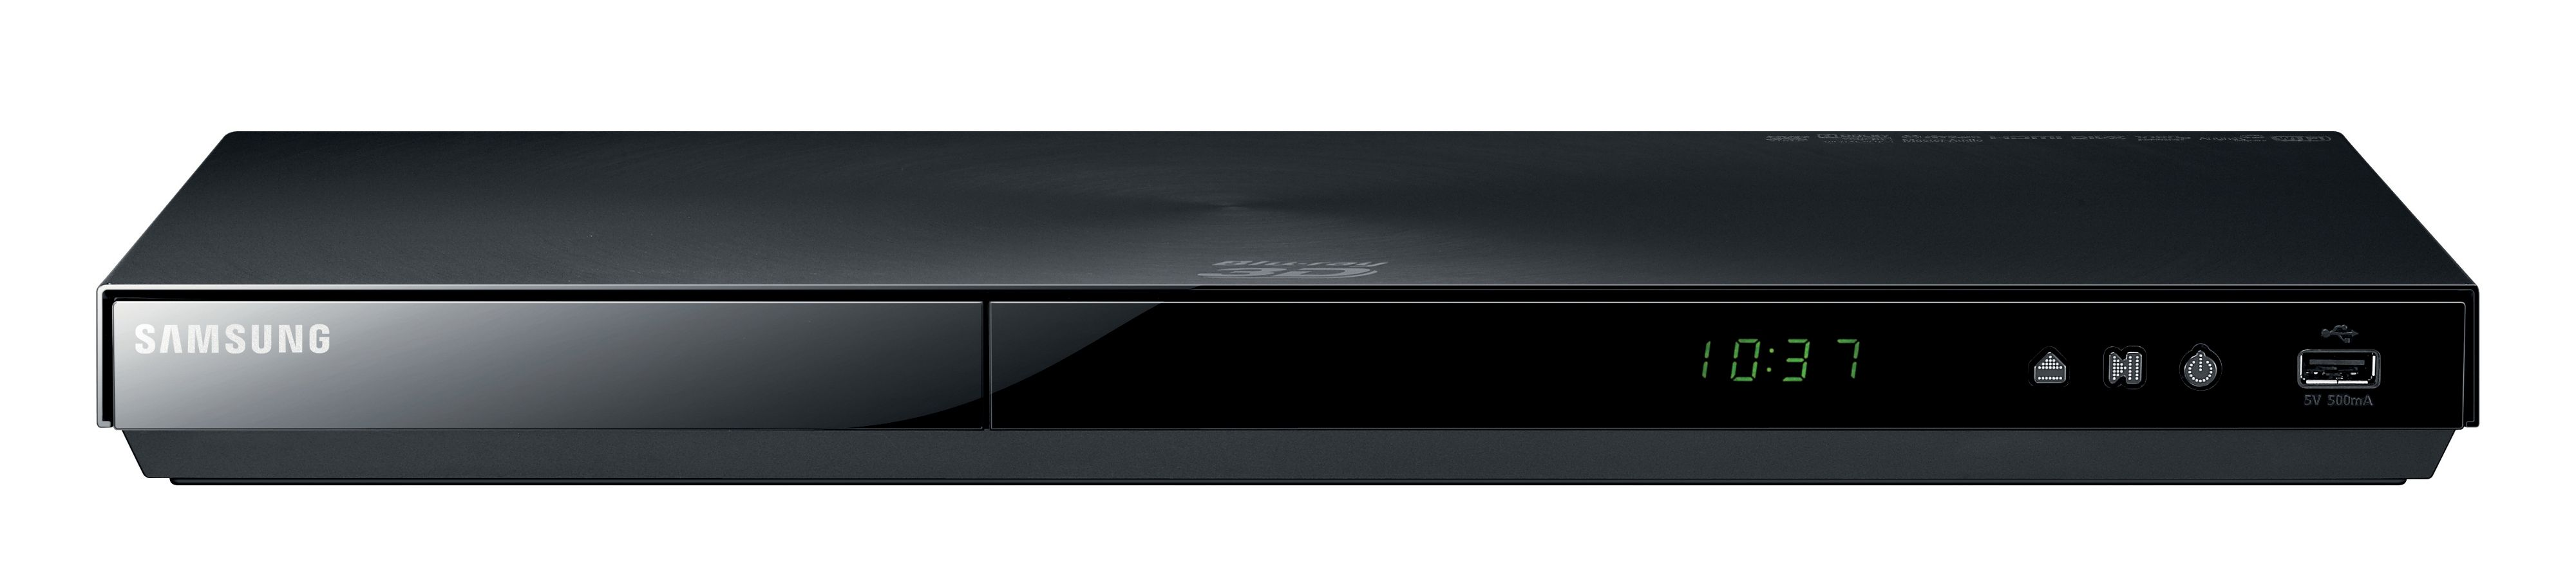 Samsung BD-E6100 3D Smart Blu-ray Player with Built-in Wi-Fi